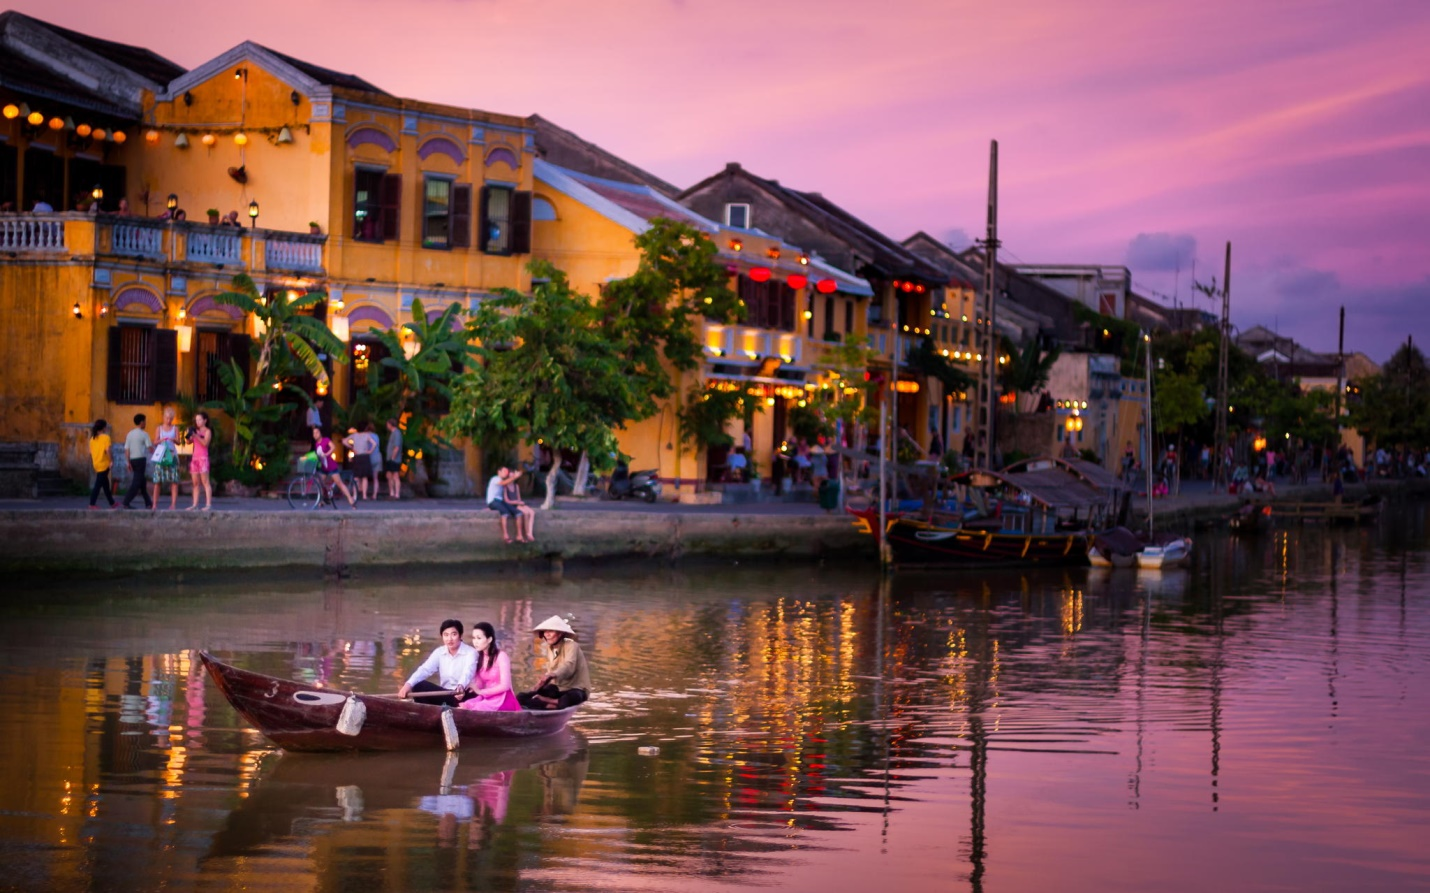 Things To See In Vietnam - Hoi An